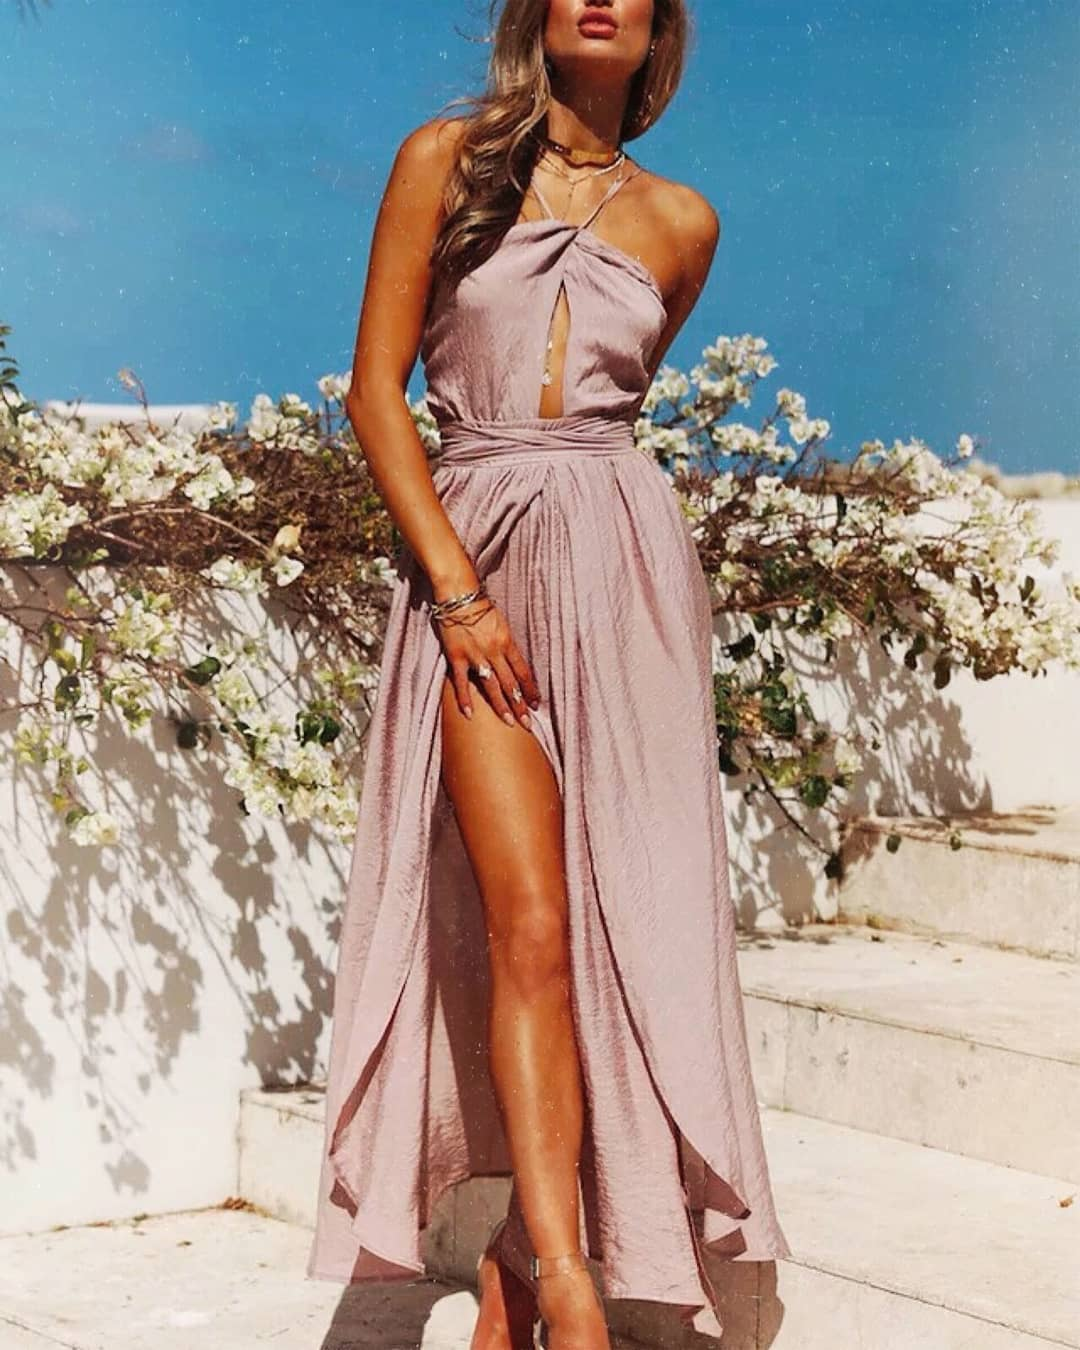 Pastel Purple Greek Style Dress For Summer Vacation 2019